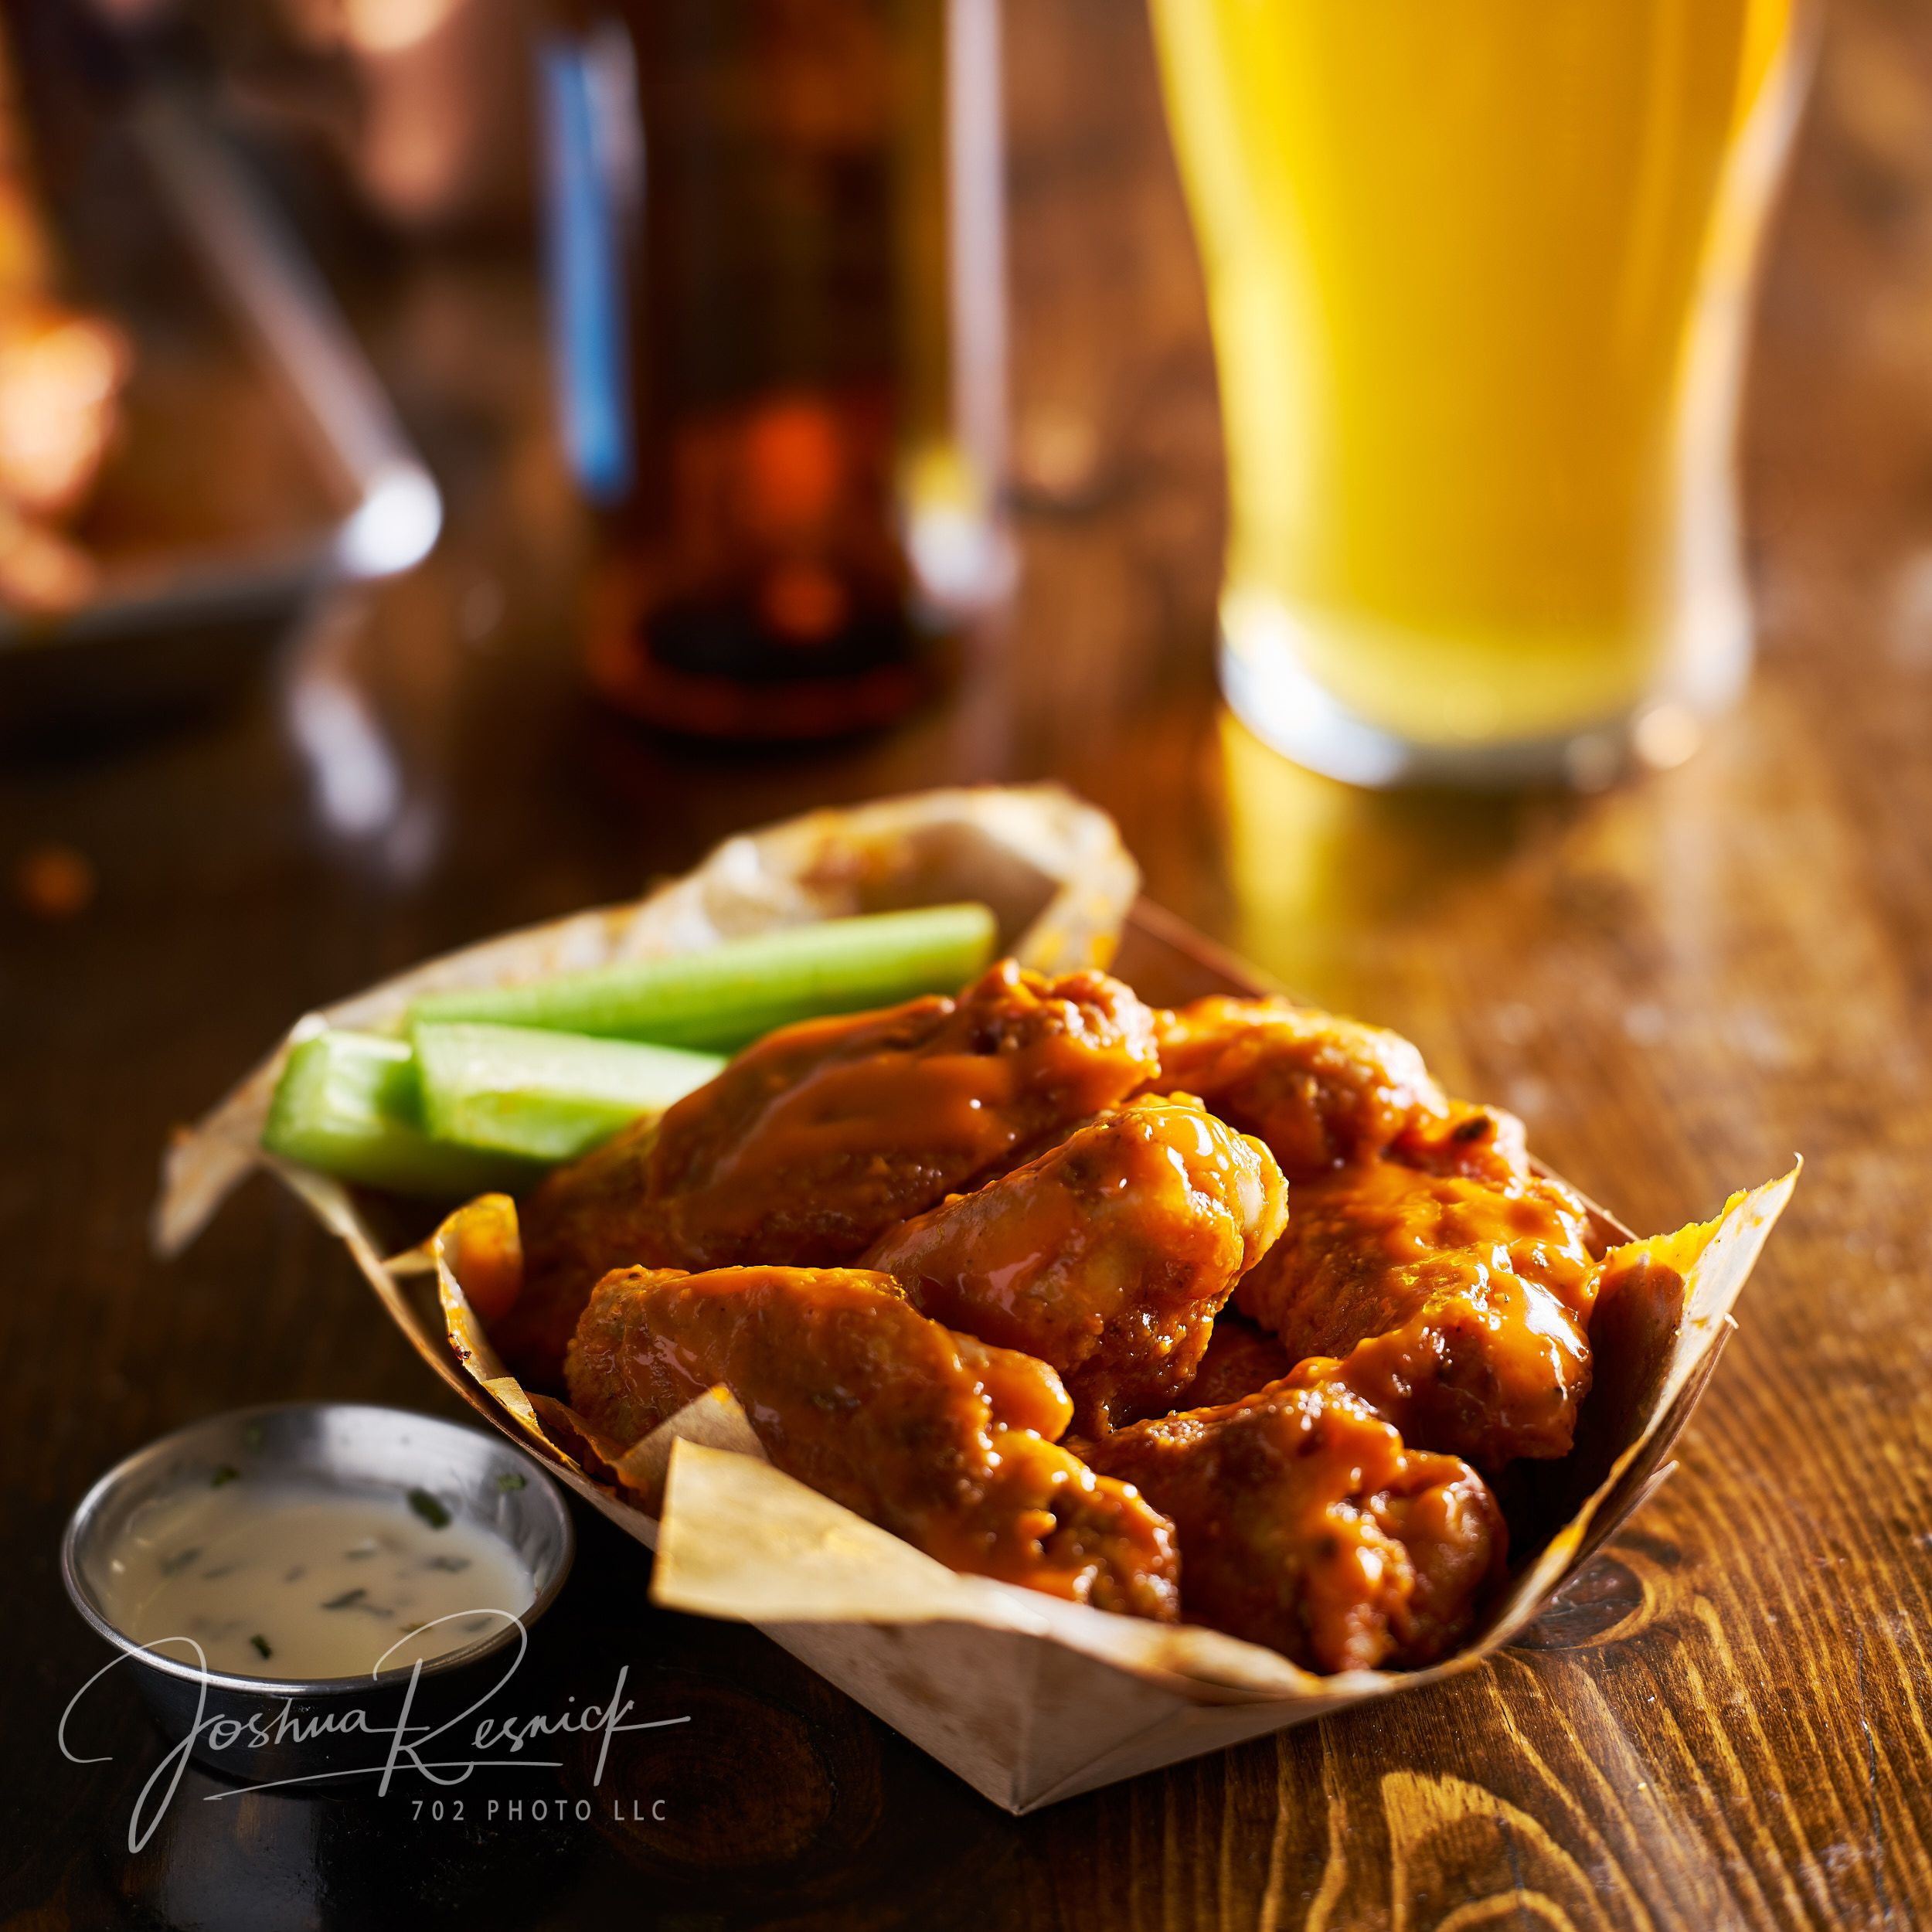 food chicken wings buffalo beer alcohol fried hot sauce